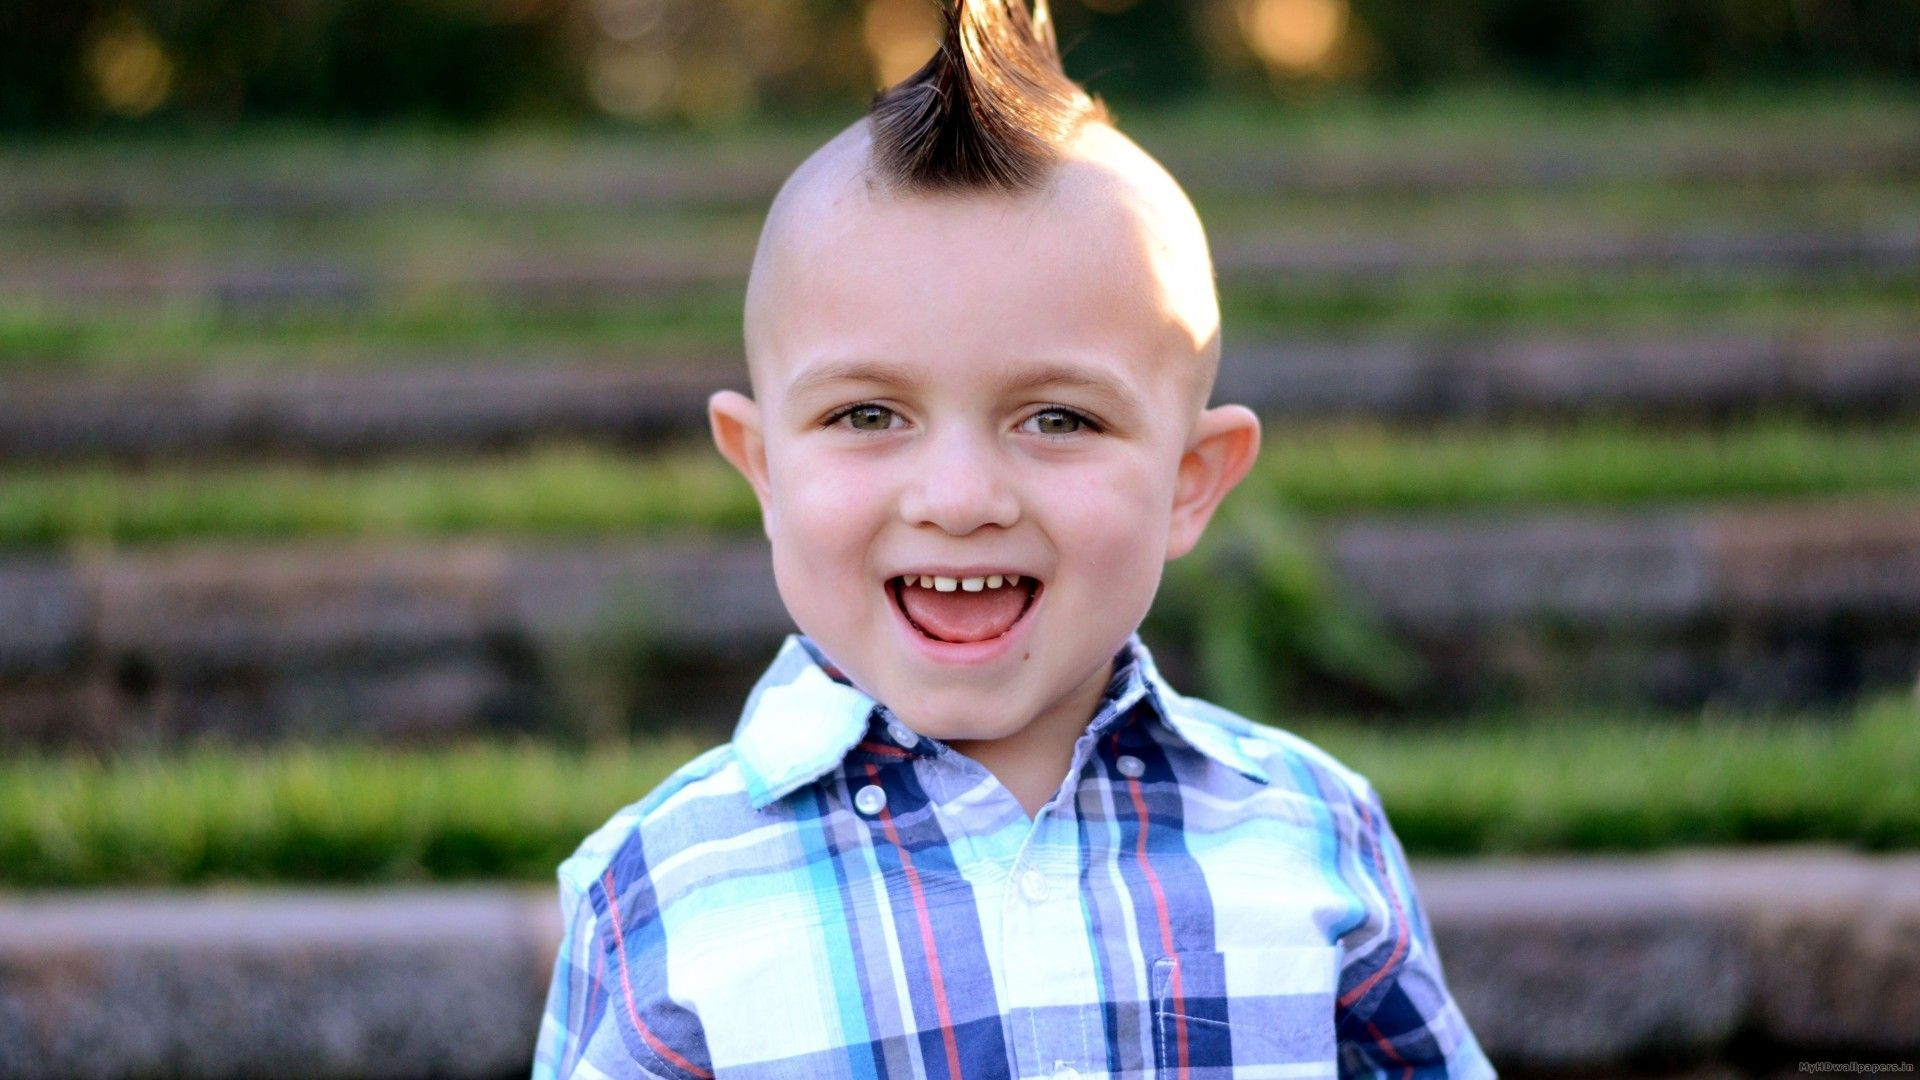 Pin By Hd Wallpapers On Hd Wallpapers Hair Cuts Boy Hairstyles